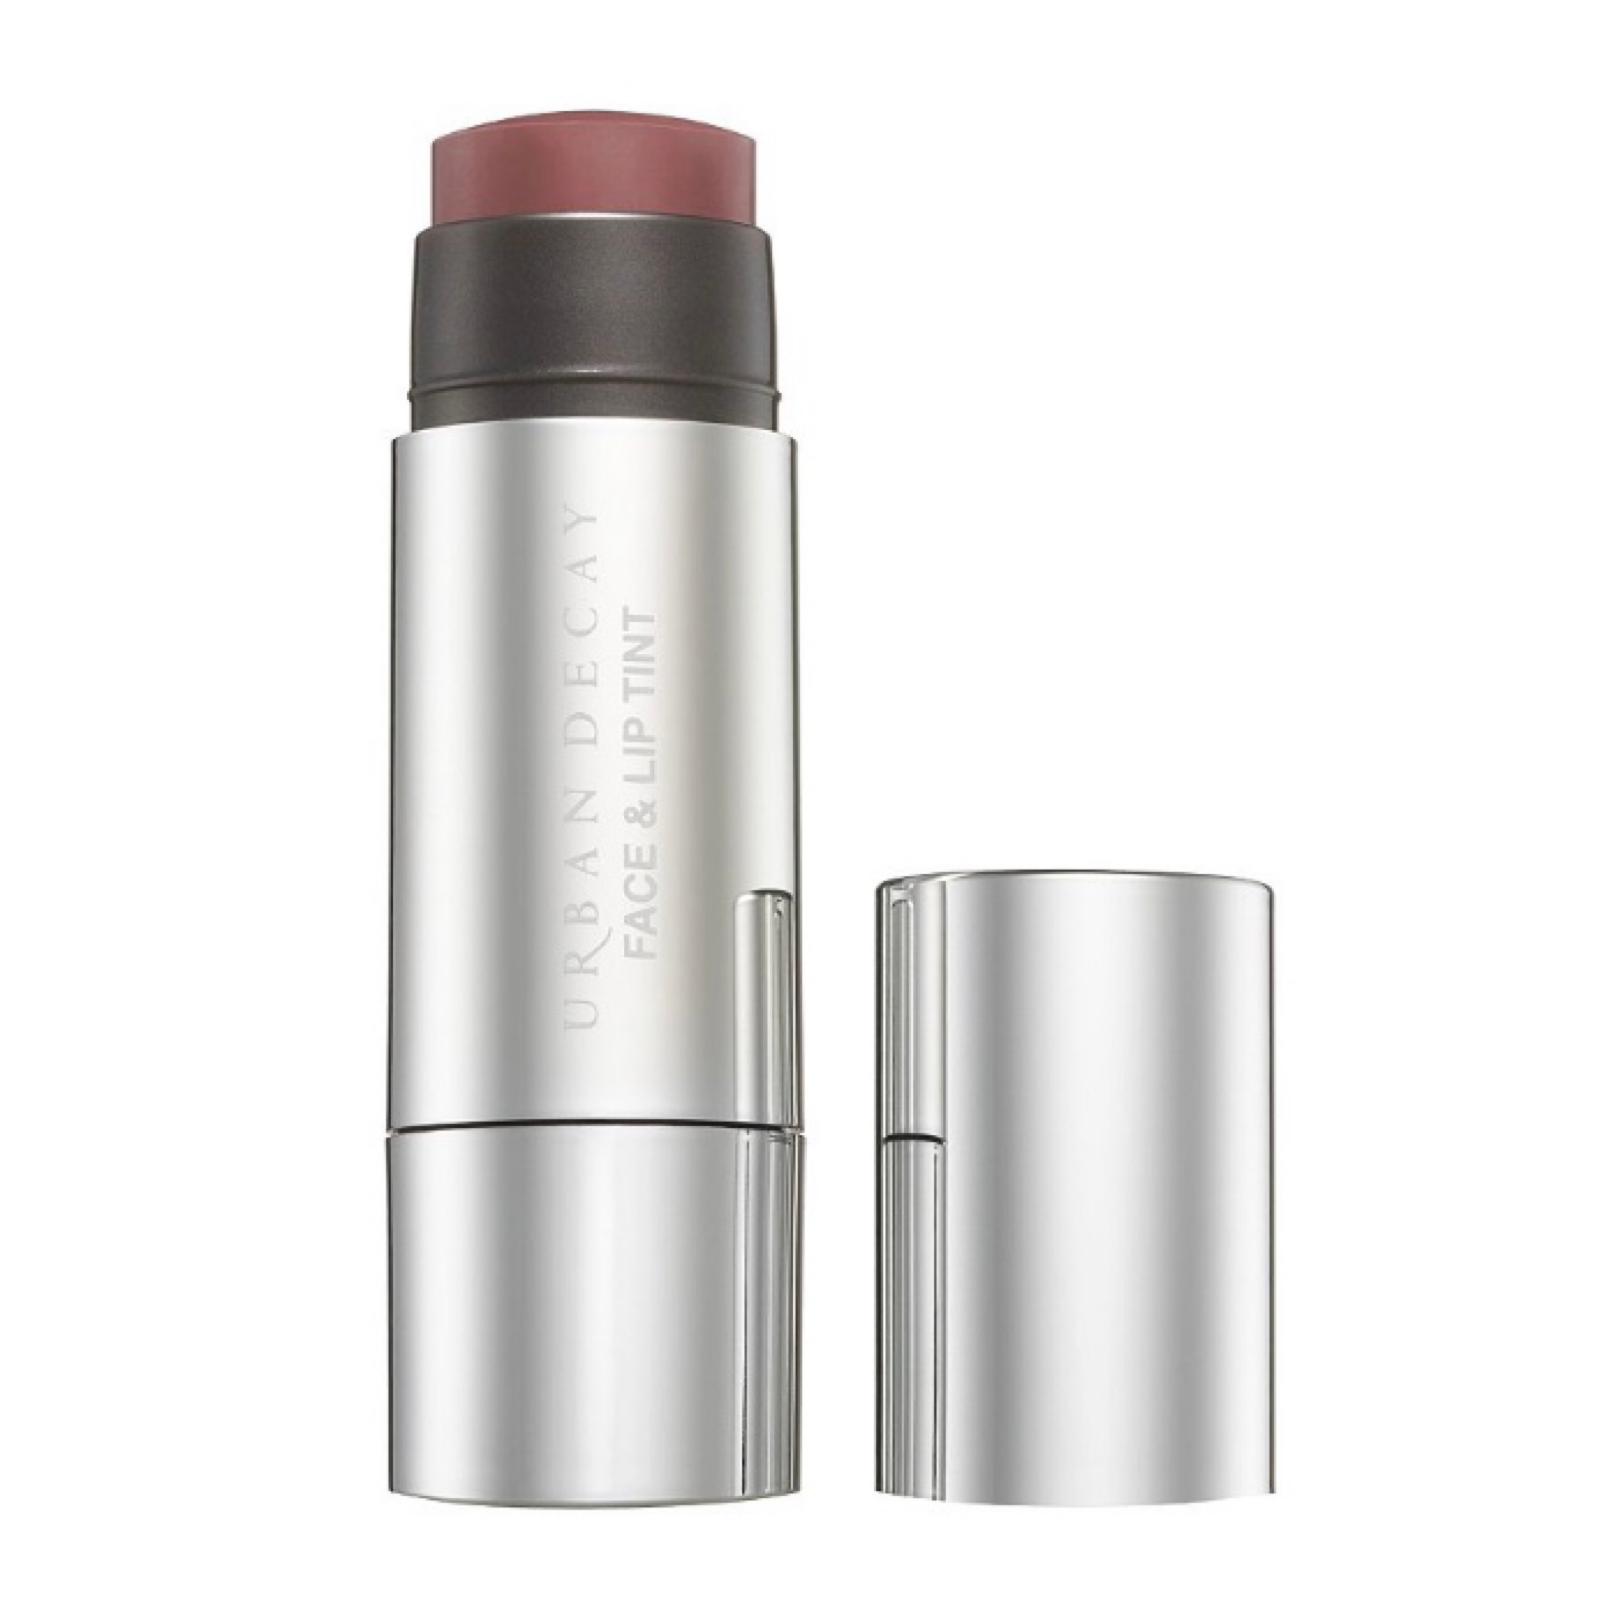 Urban Decay Stay Naked Face and Lip Tint